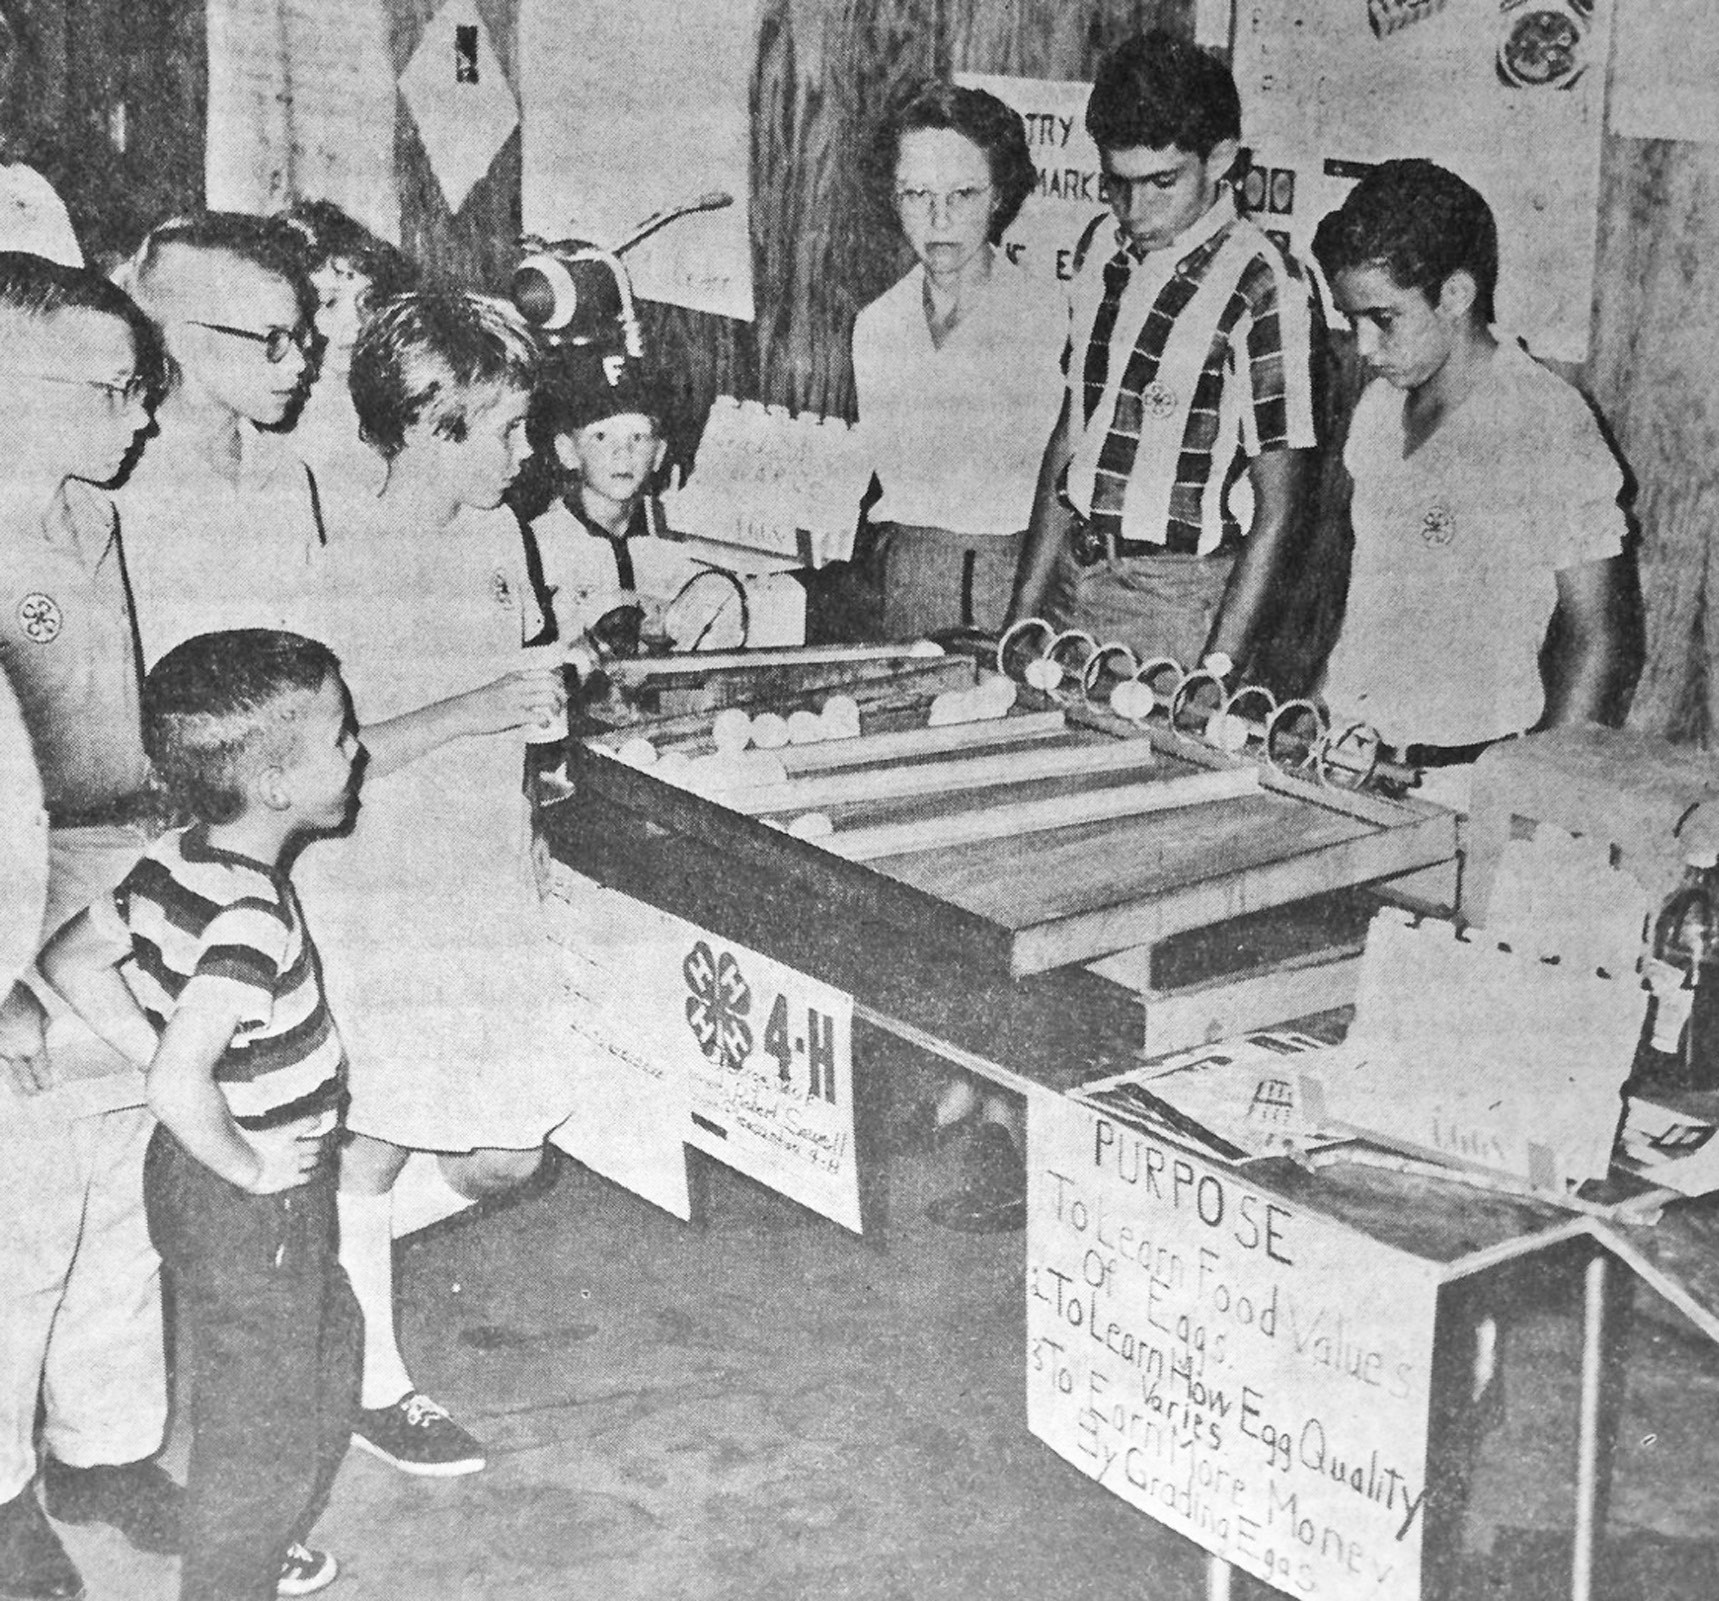 In operation-This display by two Pleasanton 4-H'ers drew considerable attention of all age groups at the 4-H Fair, Saturday. The egg grader was almost in continuous operation, grading and sizing fresh eggs by automation. Mrs. Geo Jasik (center) stands behind the grading machine demonstration set up by George Jasik Jr. and Robert Sowell, (center right and left). Express photo originally ran in the October 20, 1965 edition of the Pleasanton Express.